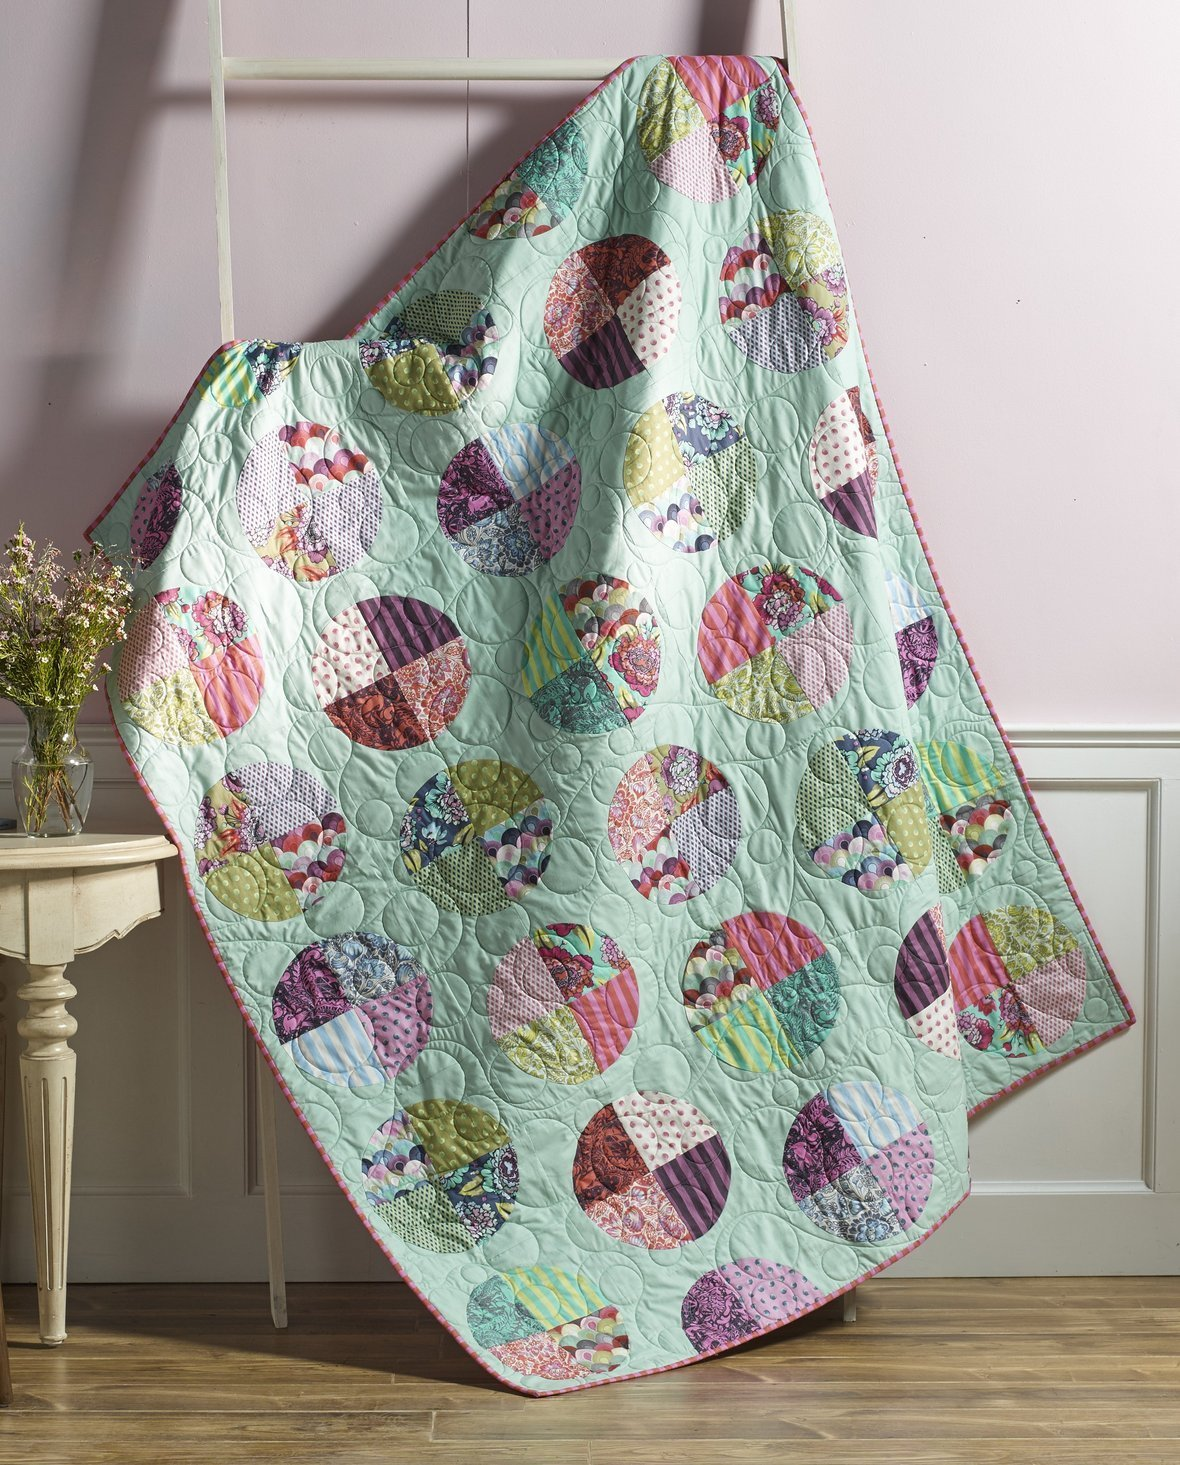 tula pink freckles quilt kit sewing pattern